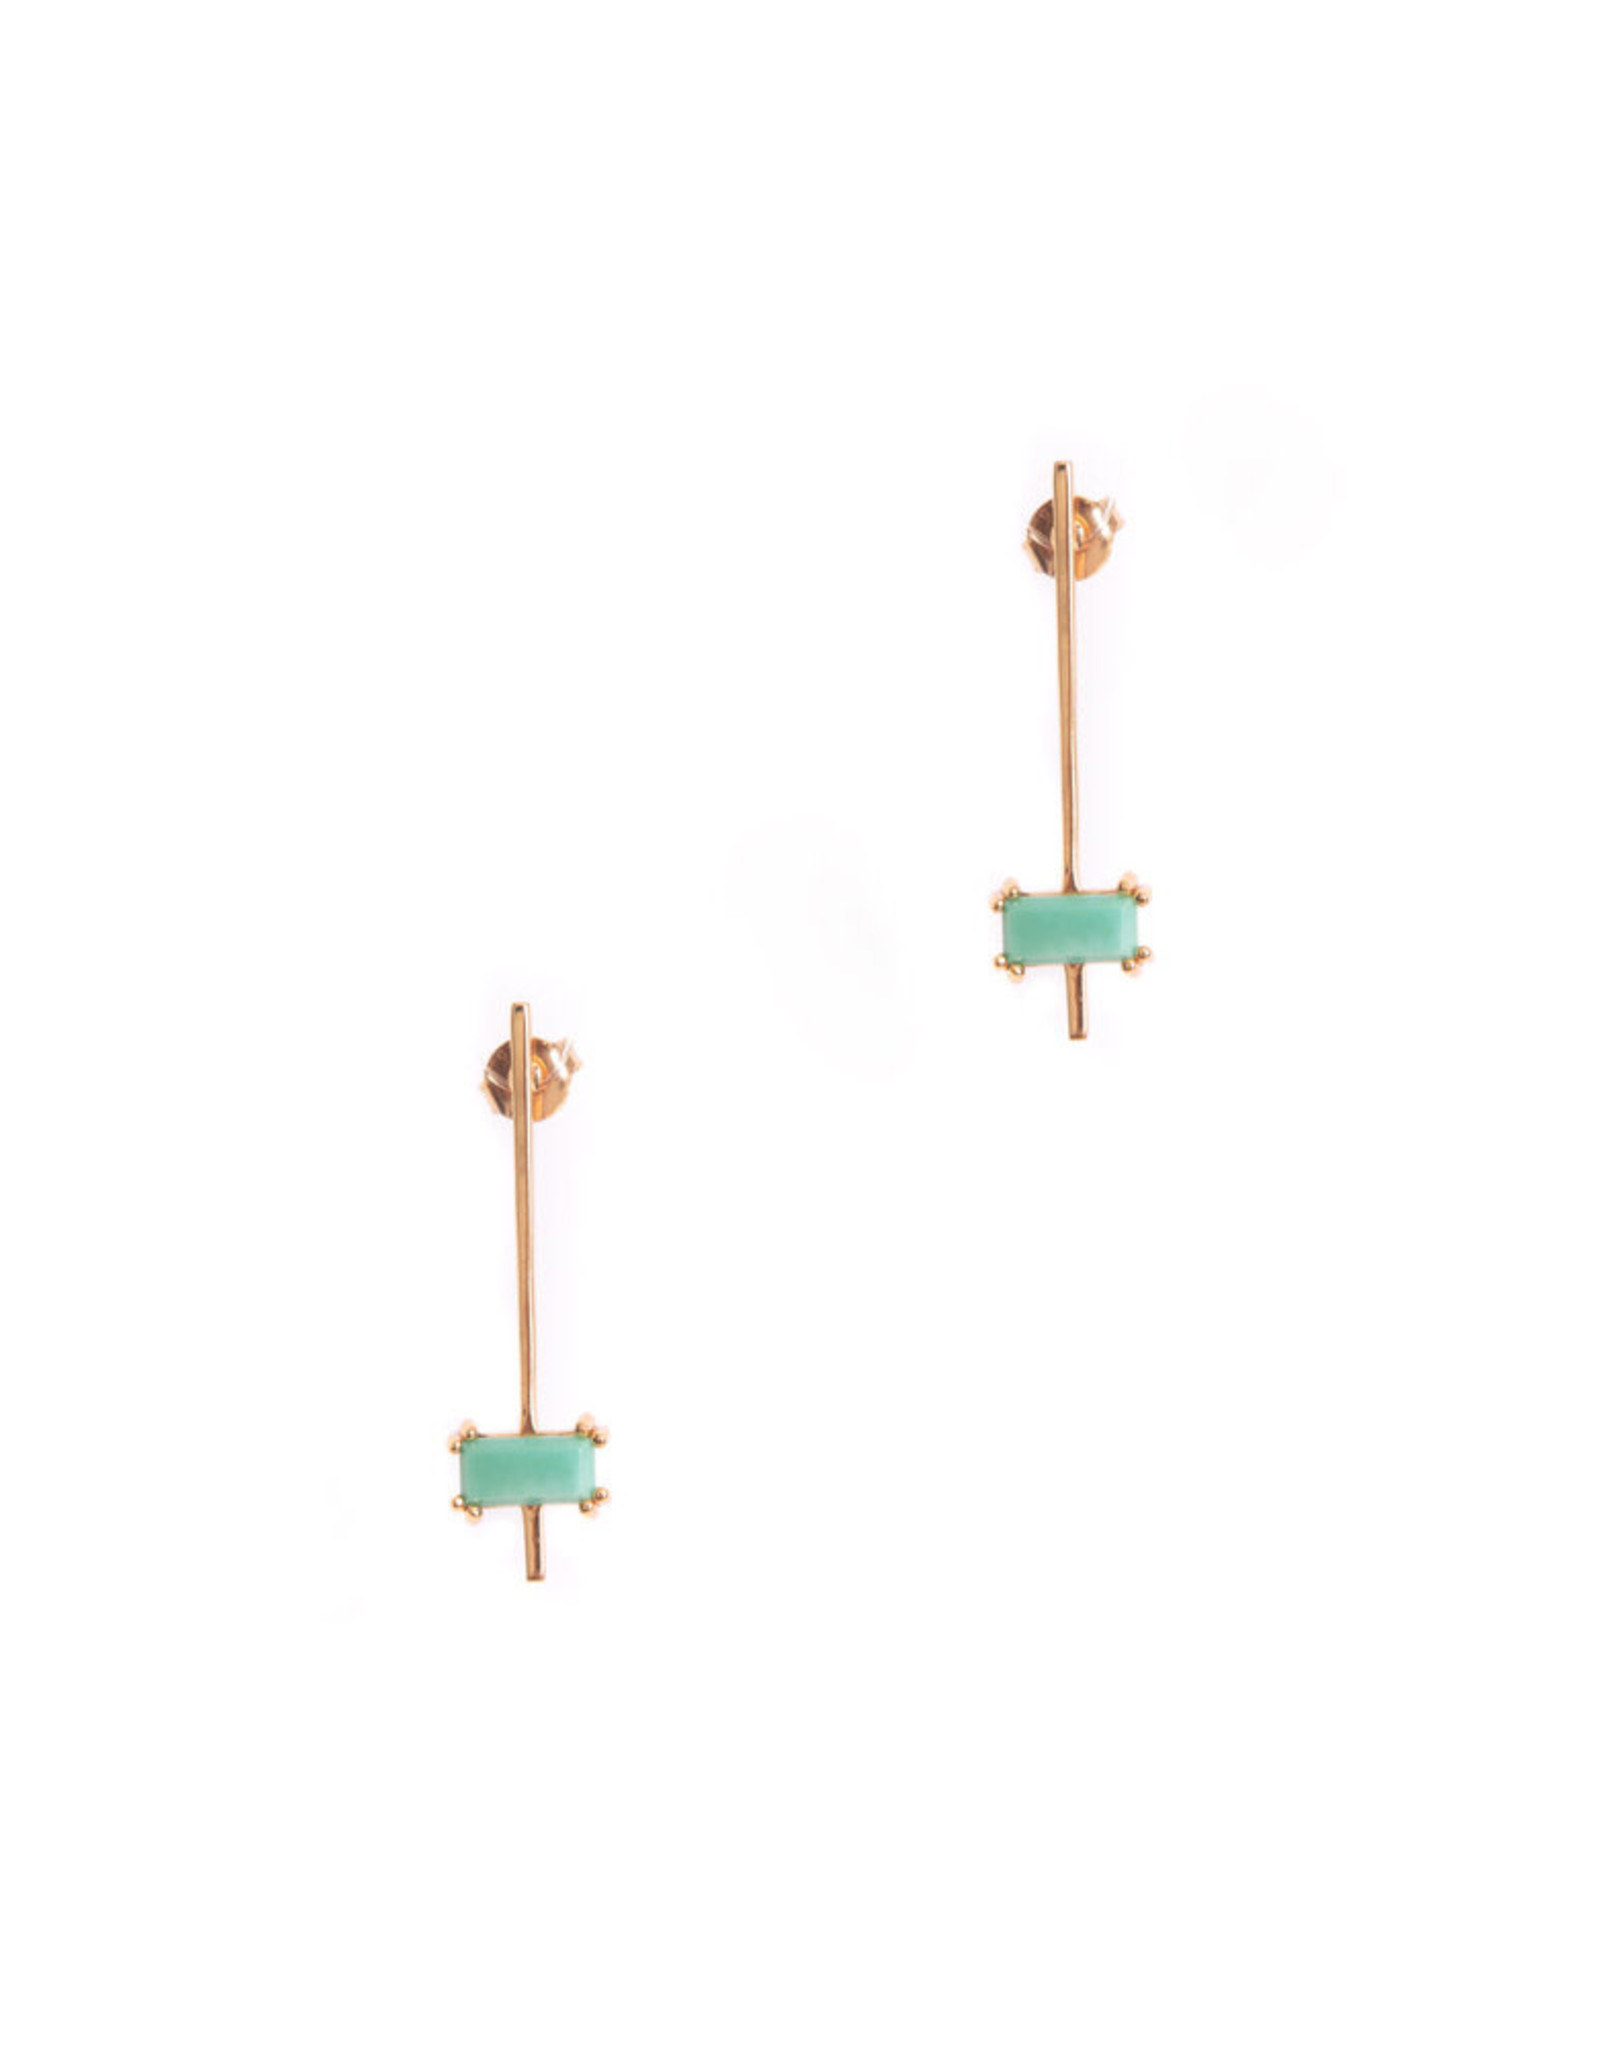 Hailey Gerrits Designs Nile Earrings - Green Turquoise